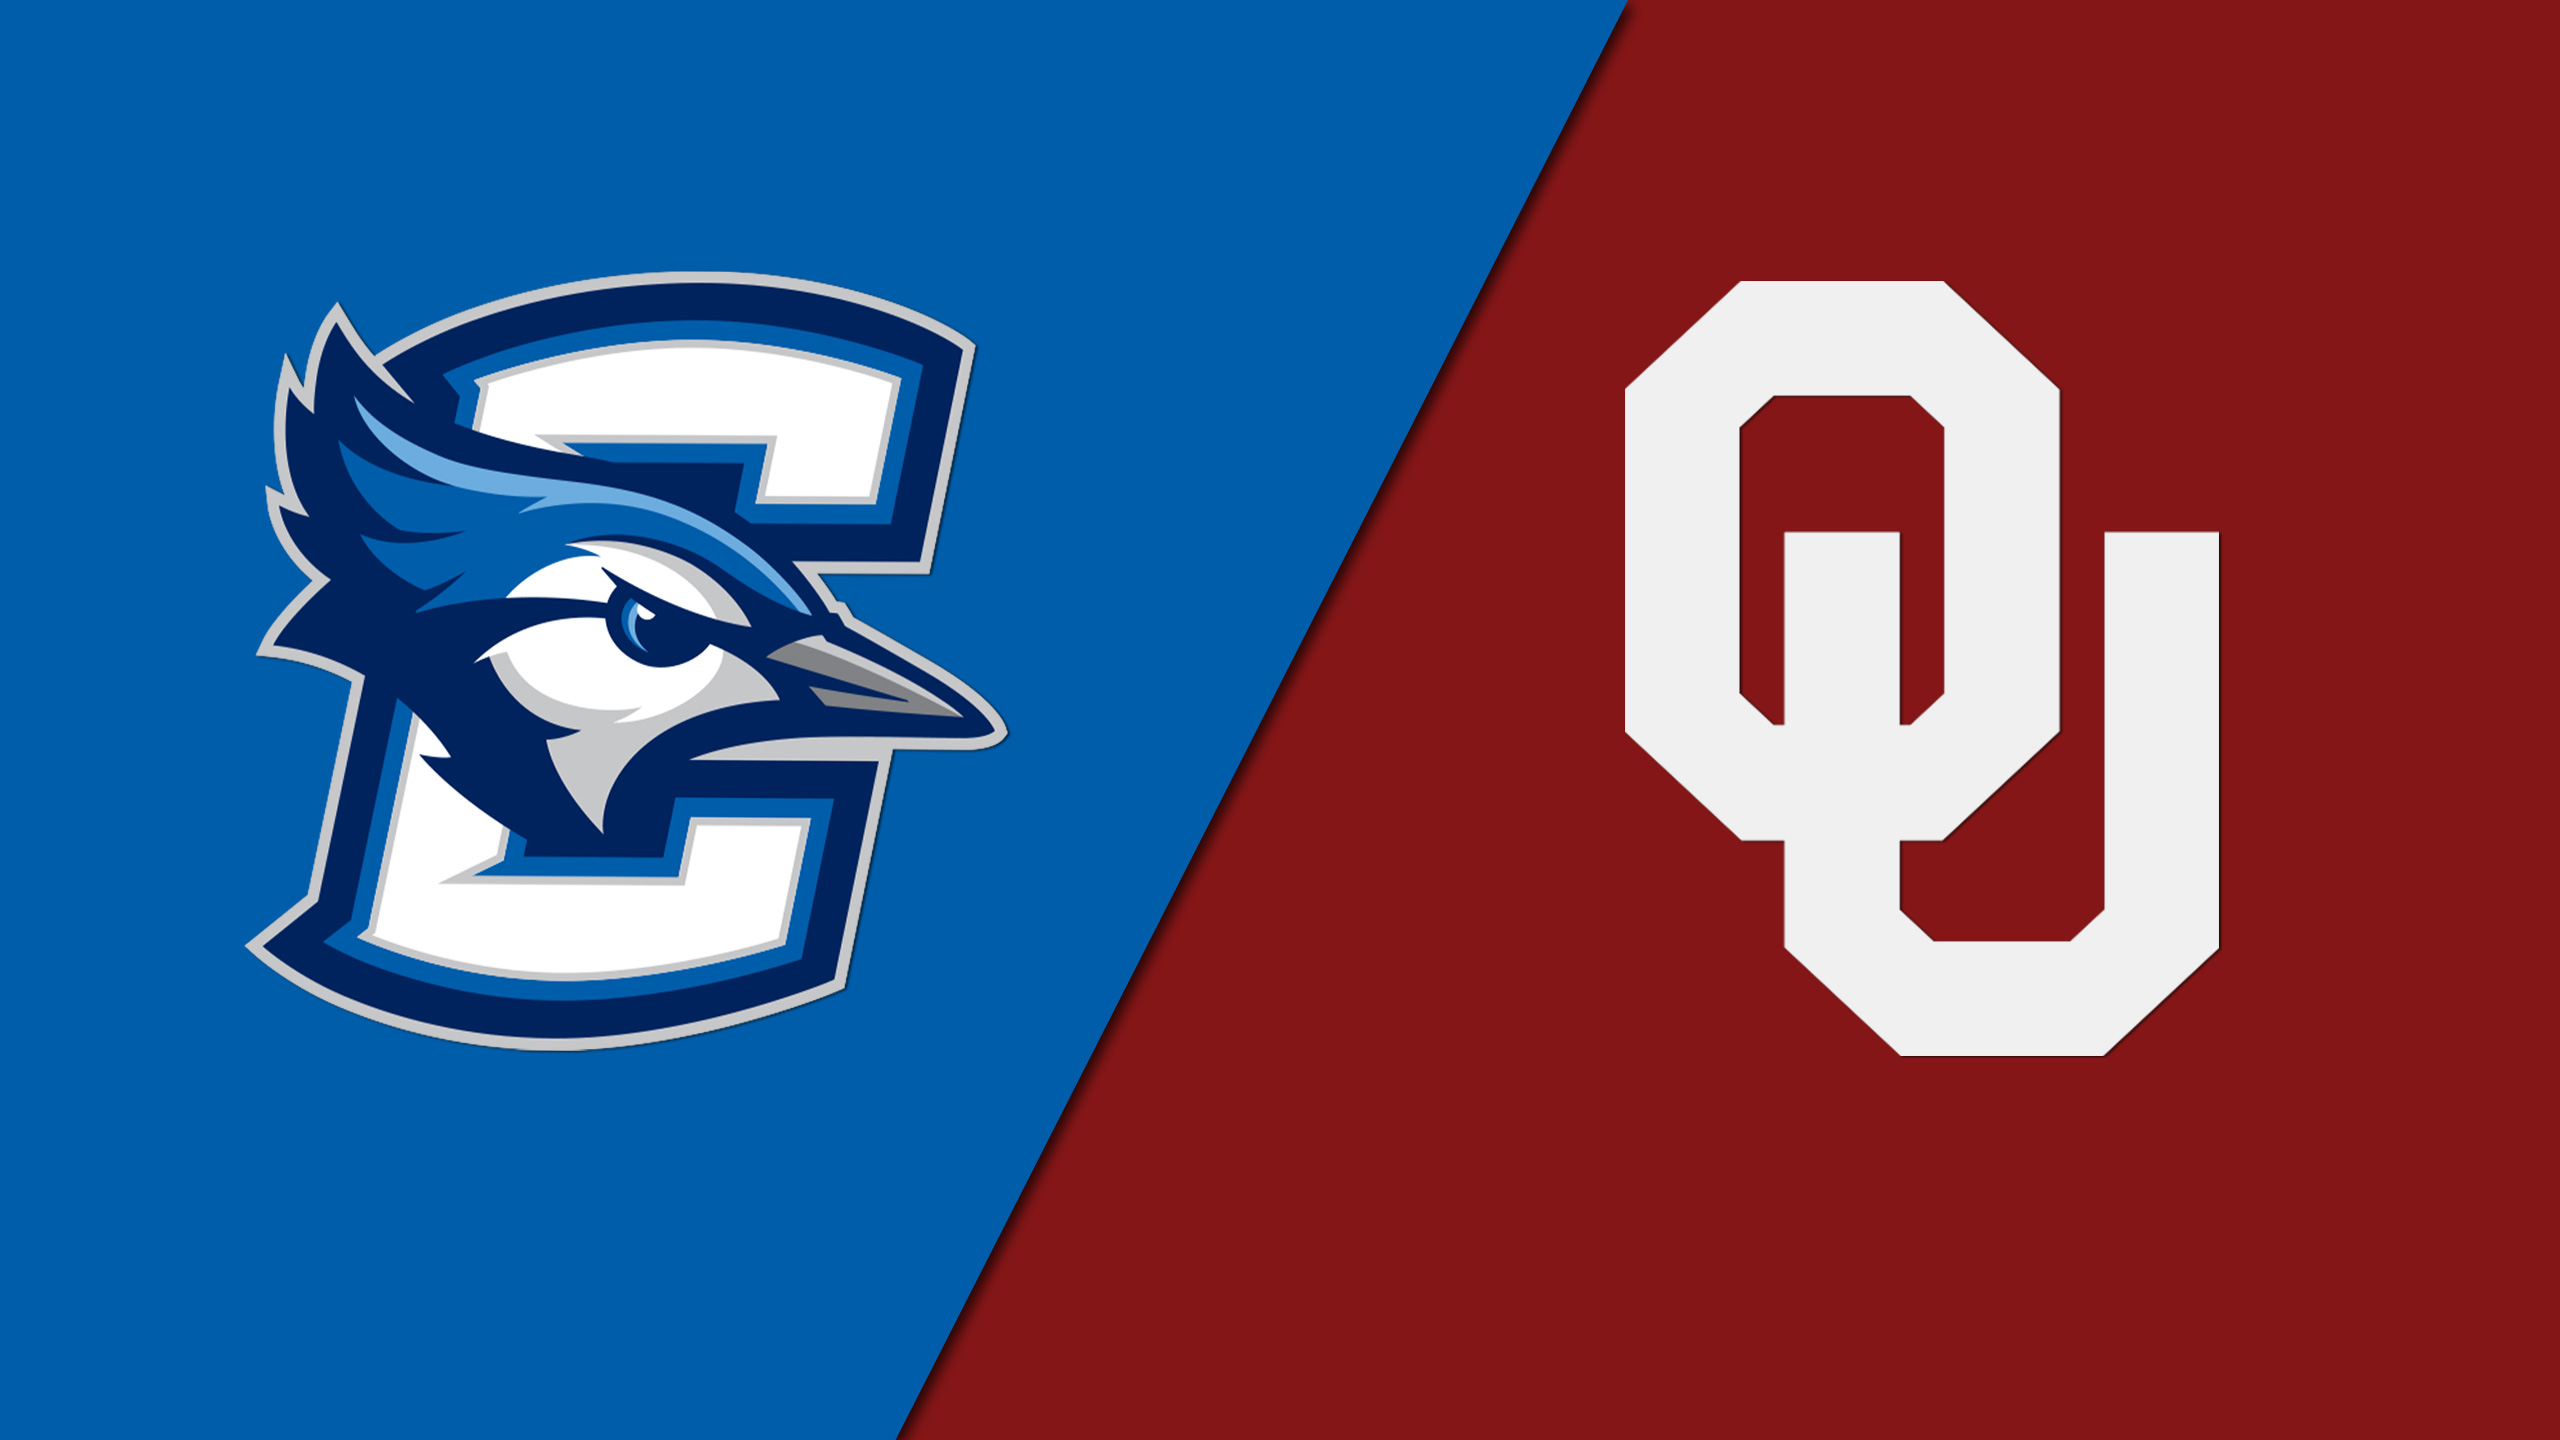 Creighton vs. Oklahoma (M Basketball)